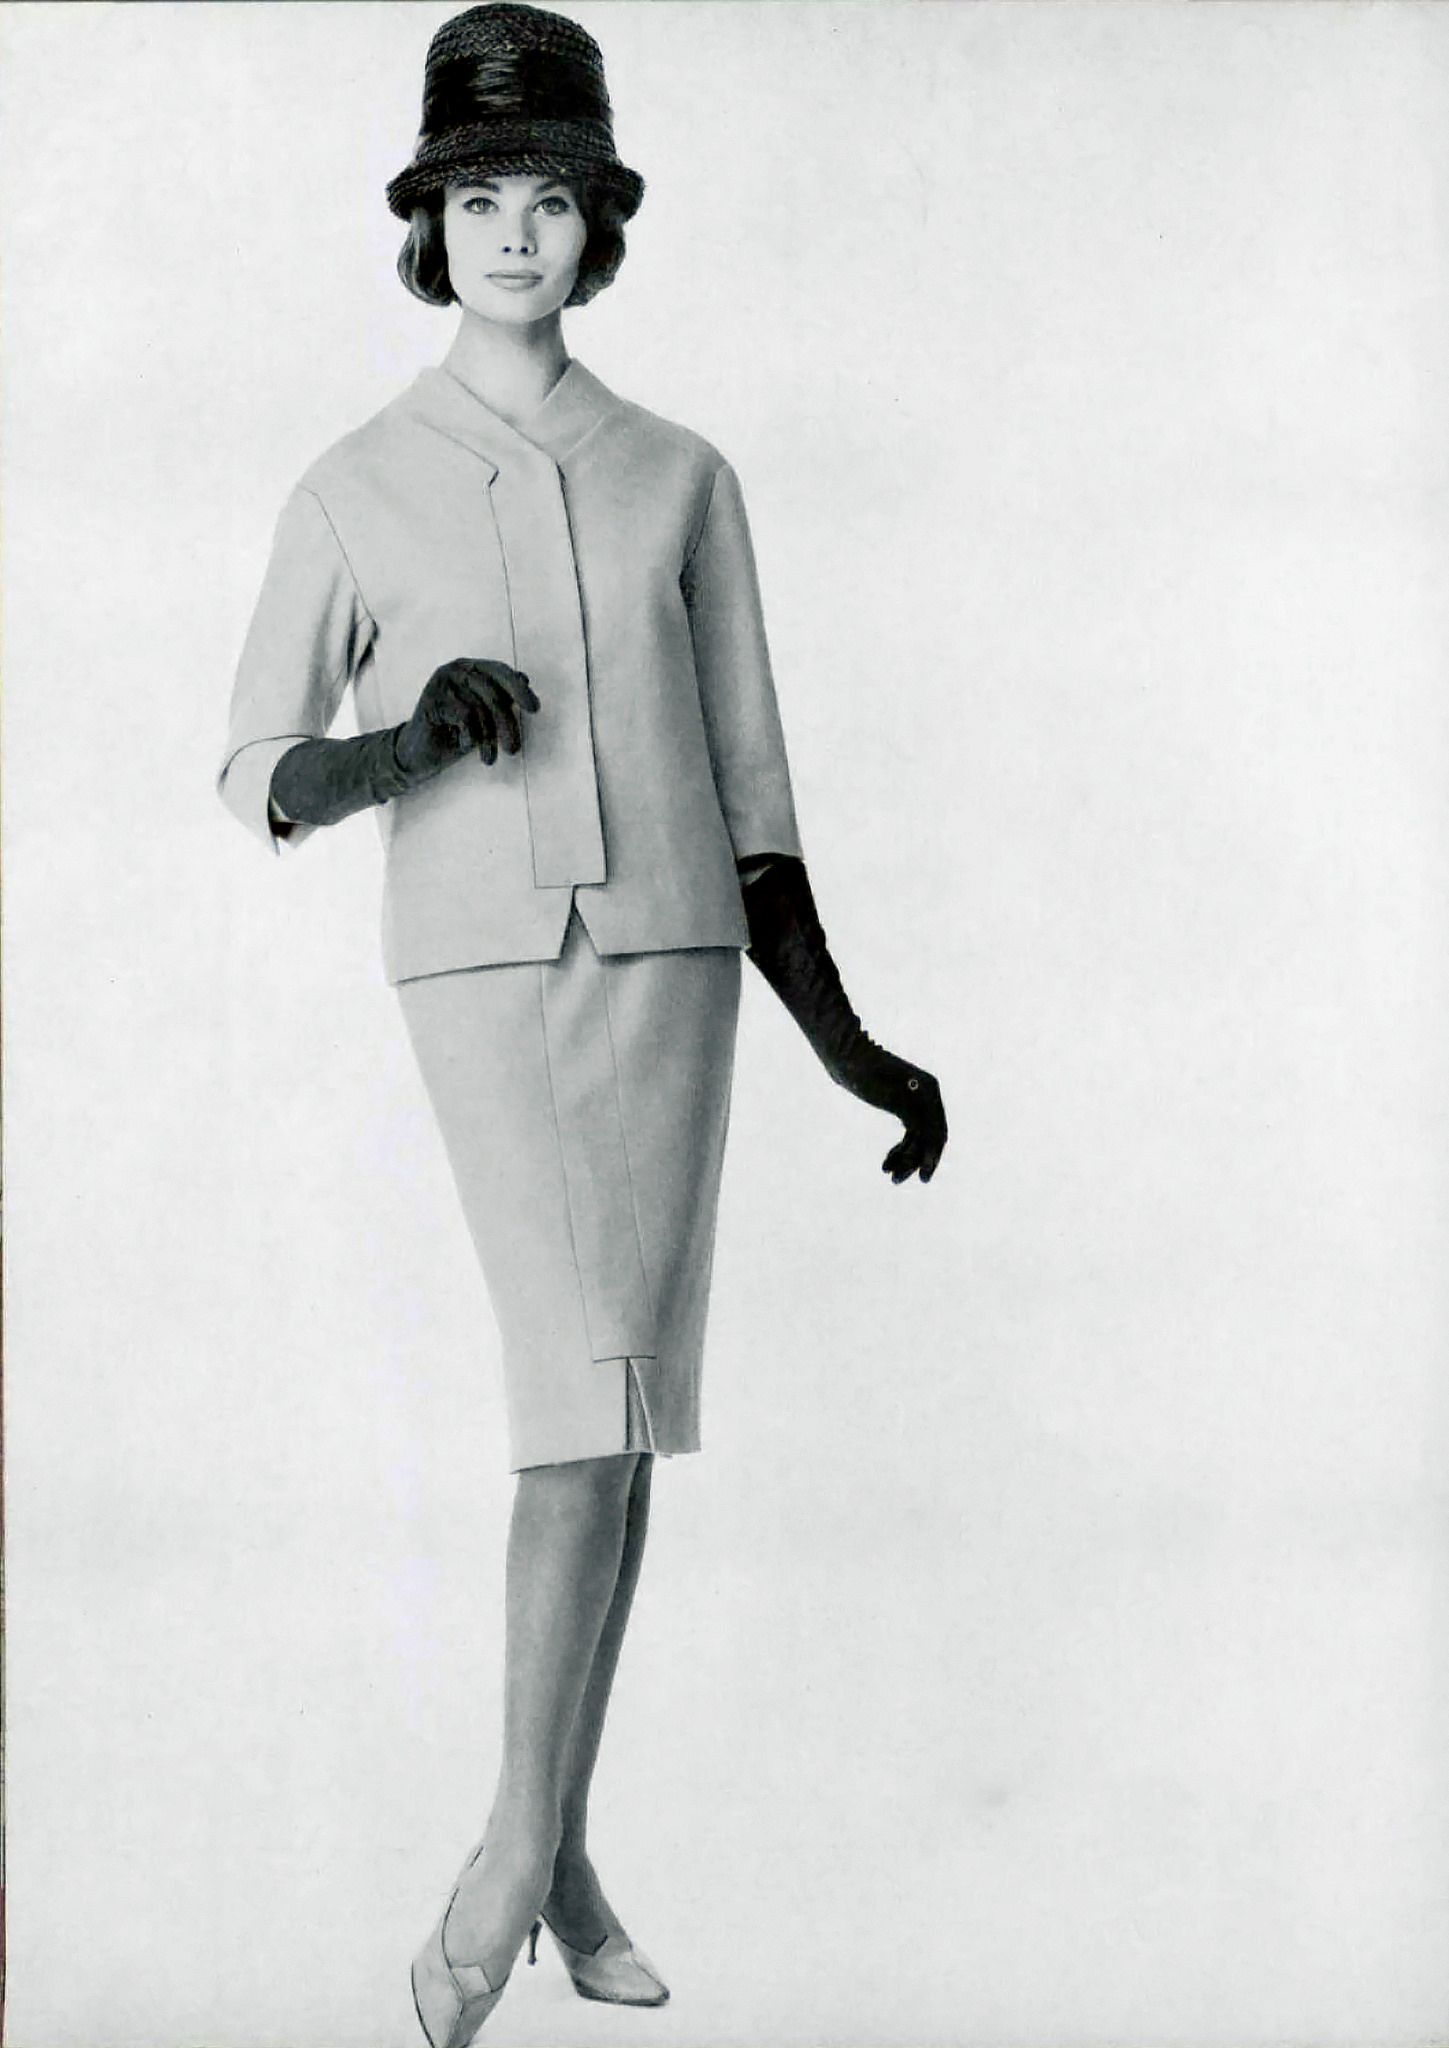 Model in suit by Carven, photo by Guegan, 1961